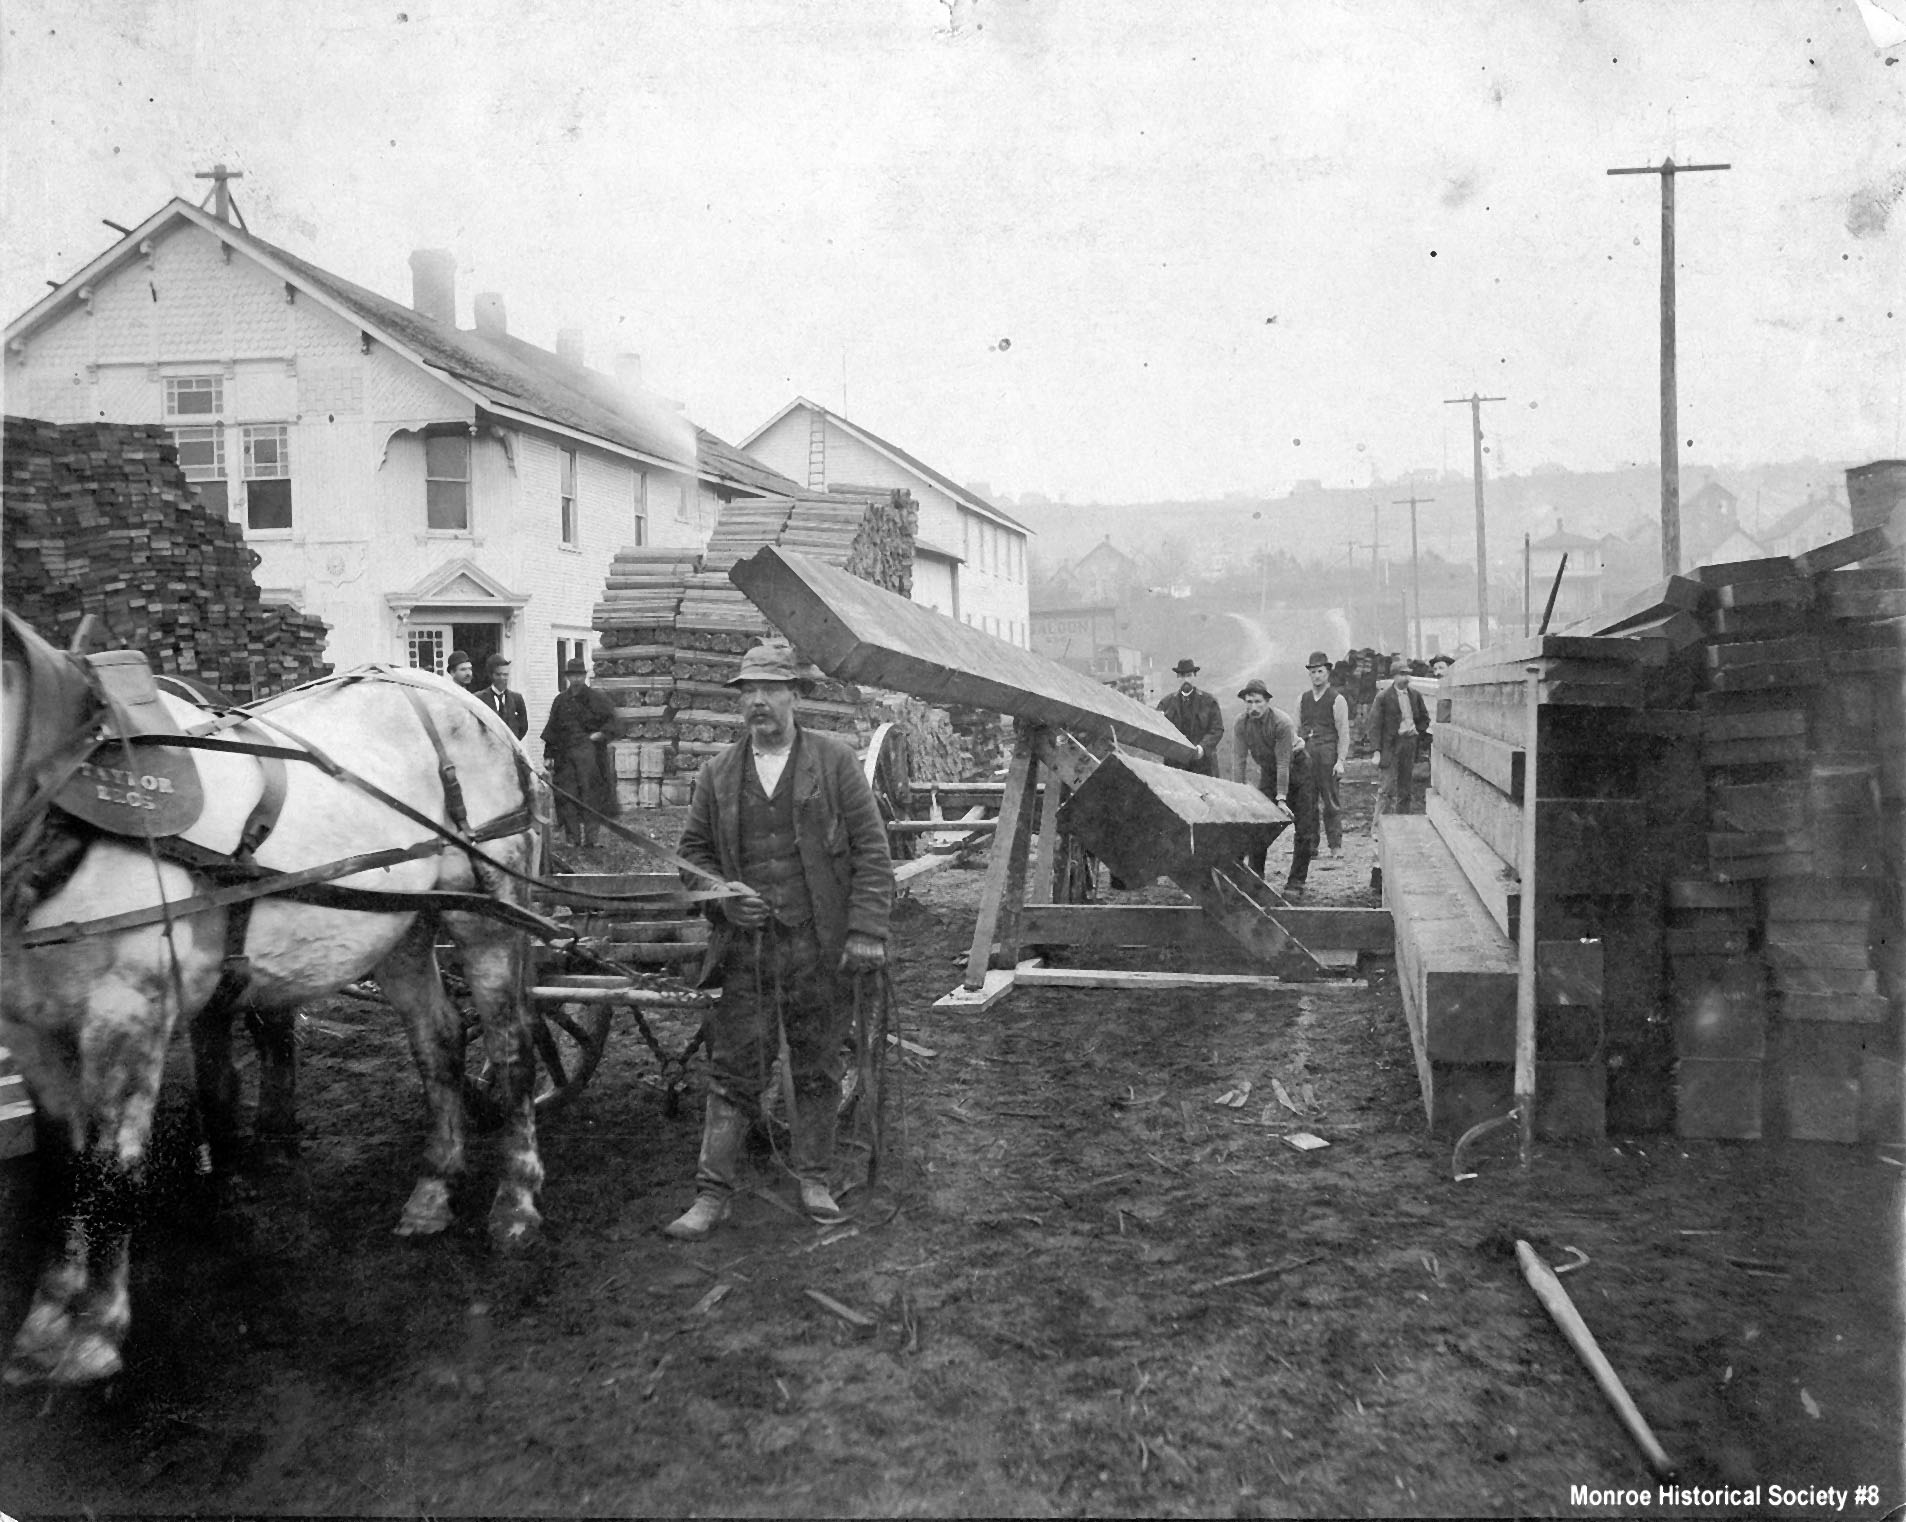 0008 – Joseph Dennis, the first horse teamster in Monroe, with his dray team